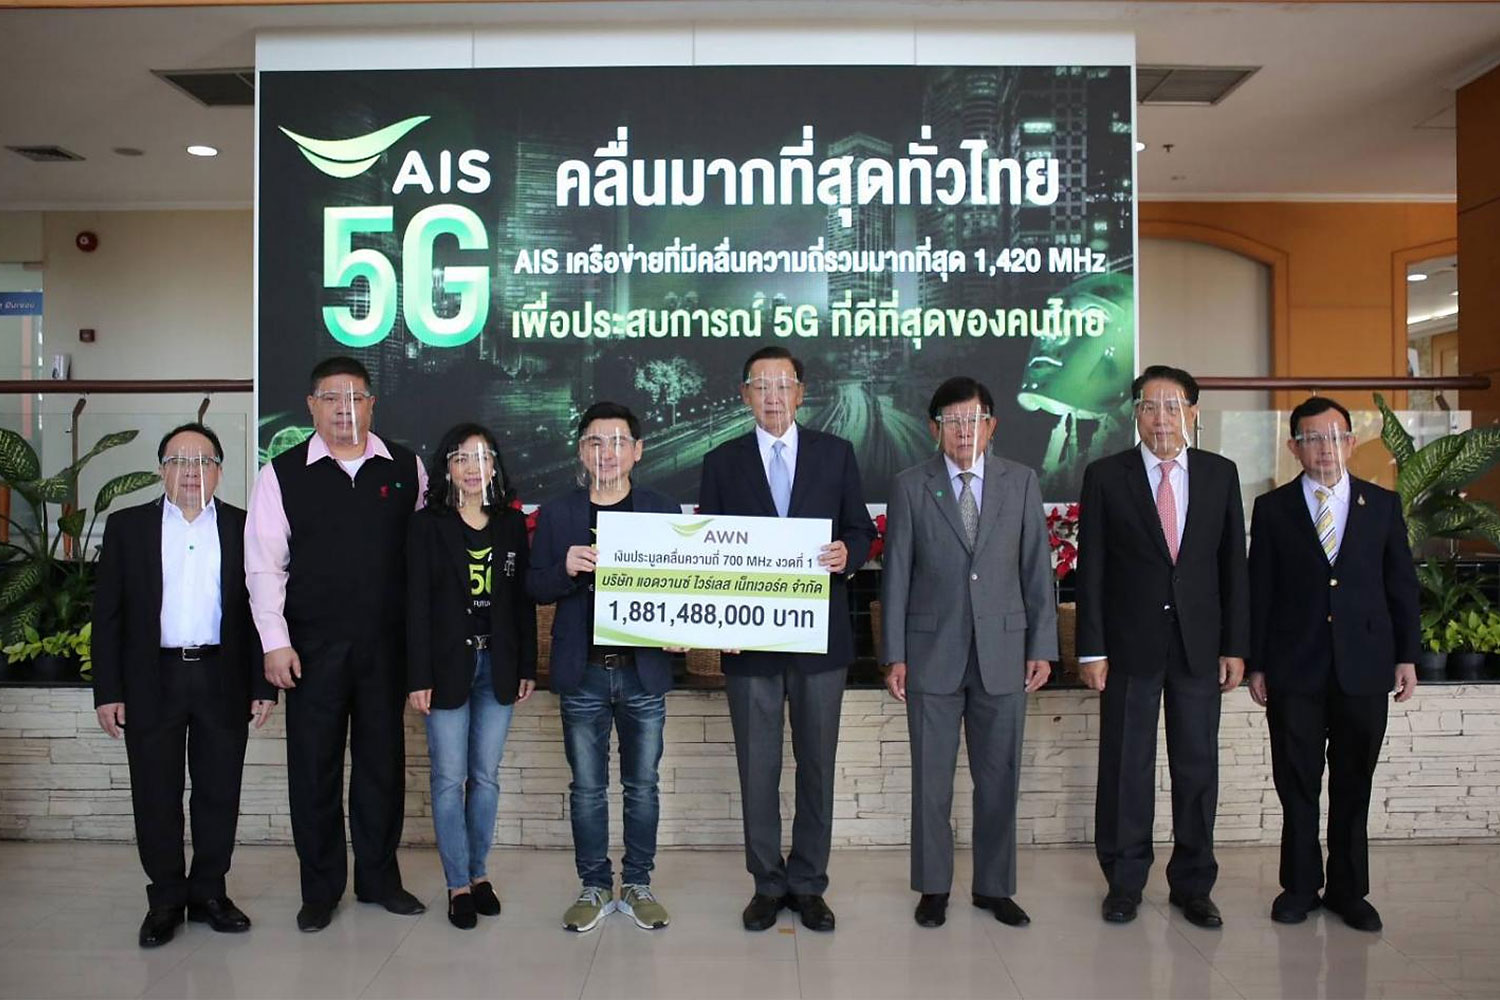 Mr Somchai (centre left) presents the payment of the first instalment of 1.88 billion baht for the 700MHz band to the NBTC.